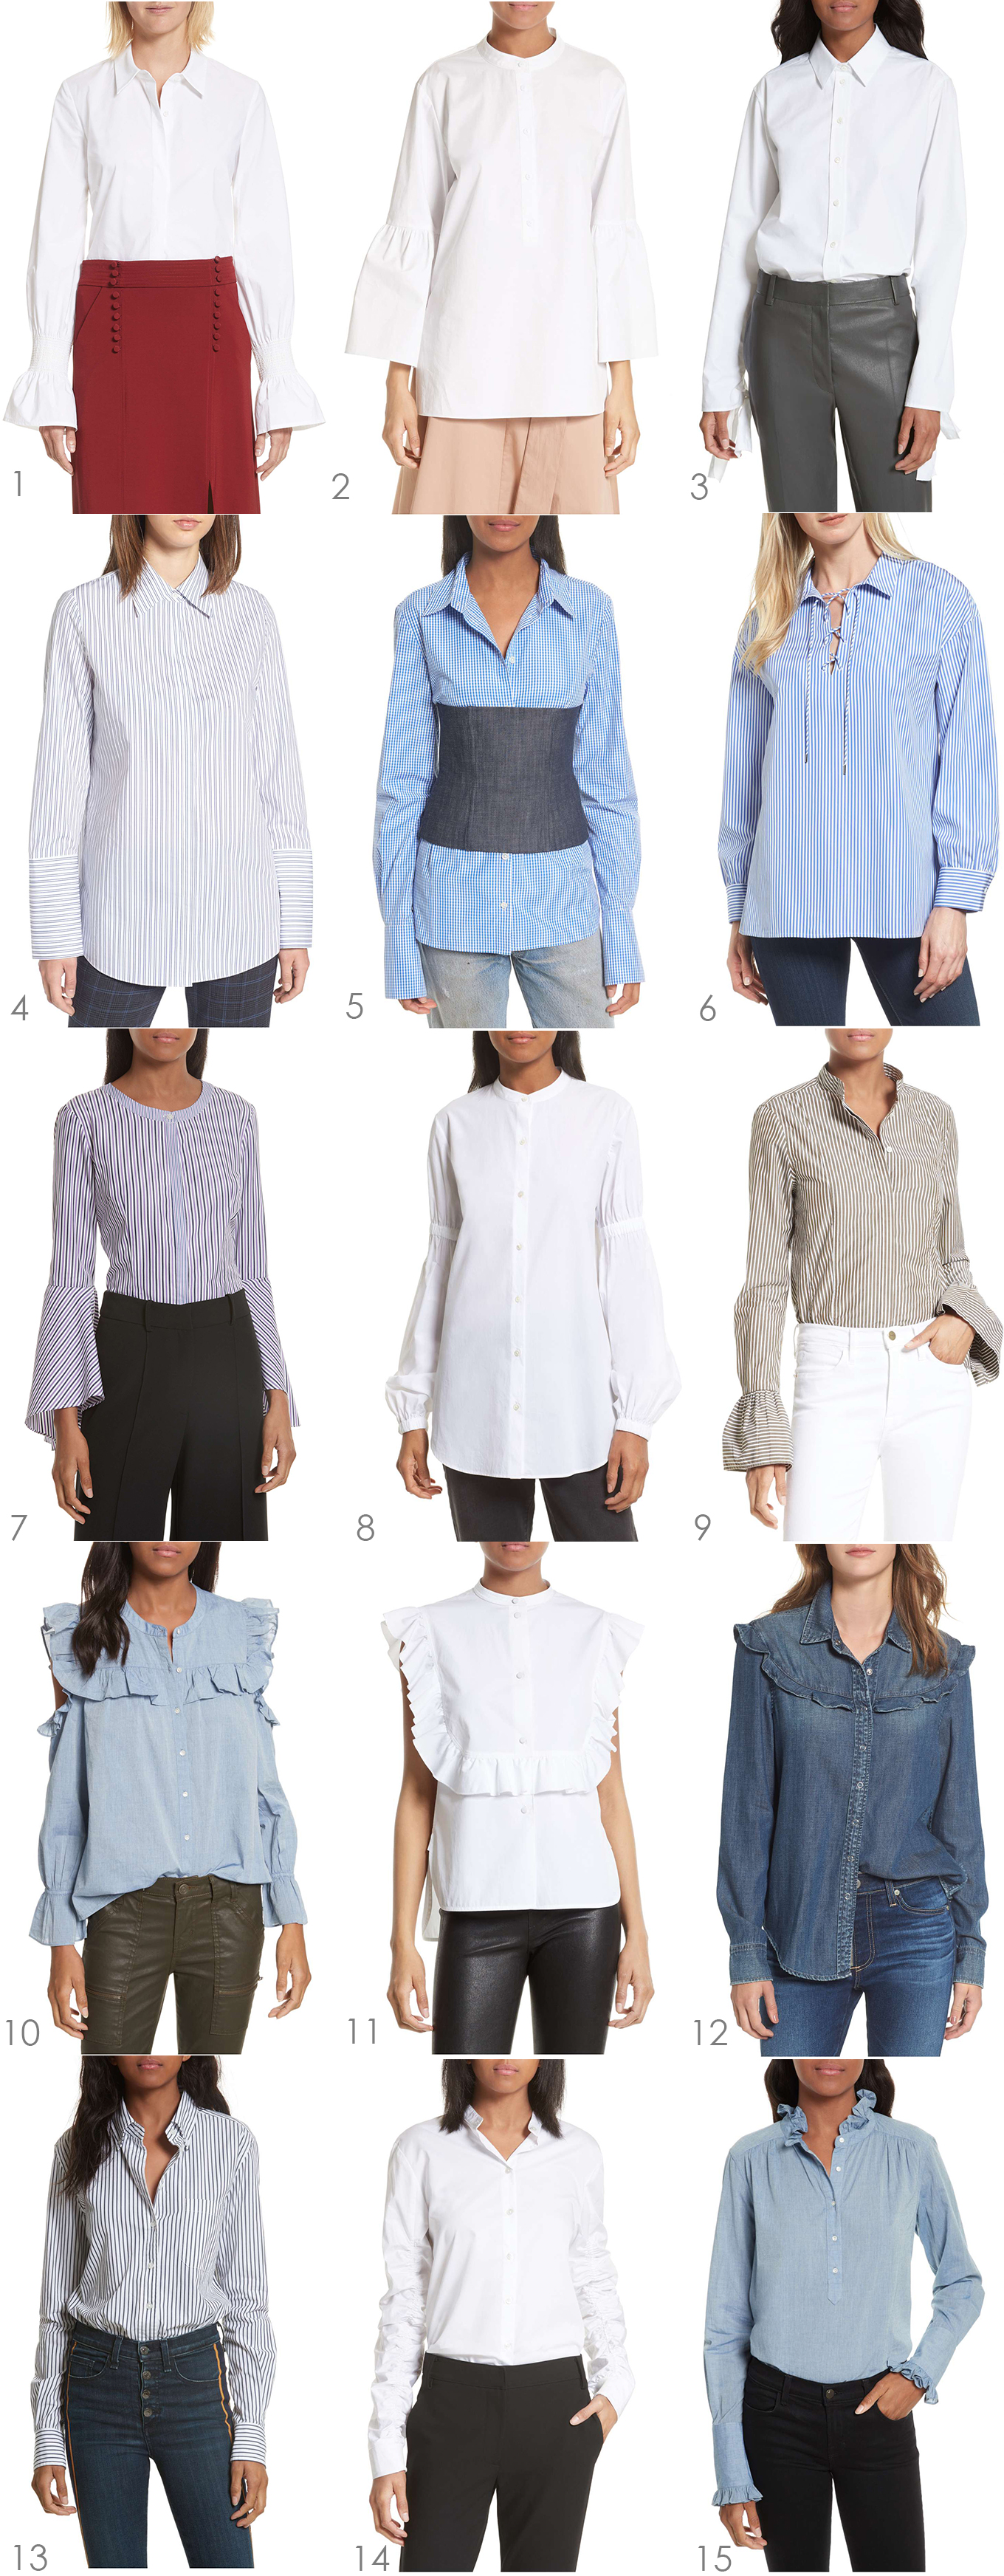 Ridgely Brode discovers 15 Updated Button Down Shirts that will up her style game and work uniform on her blog, Ridgely's Radar.